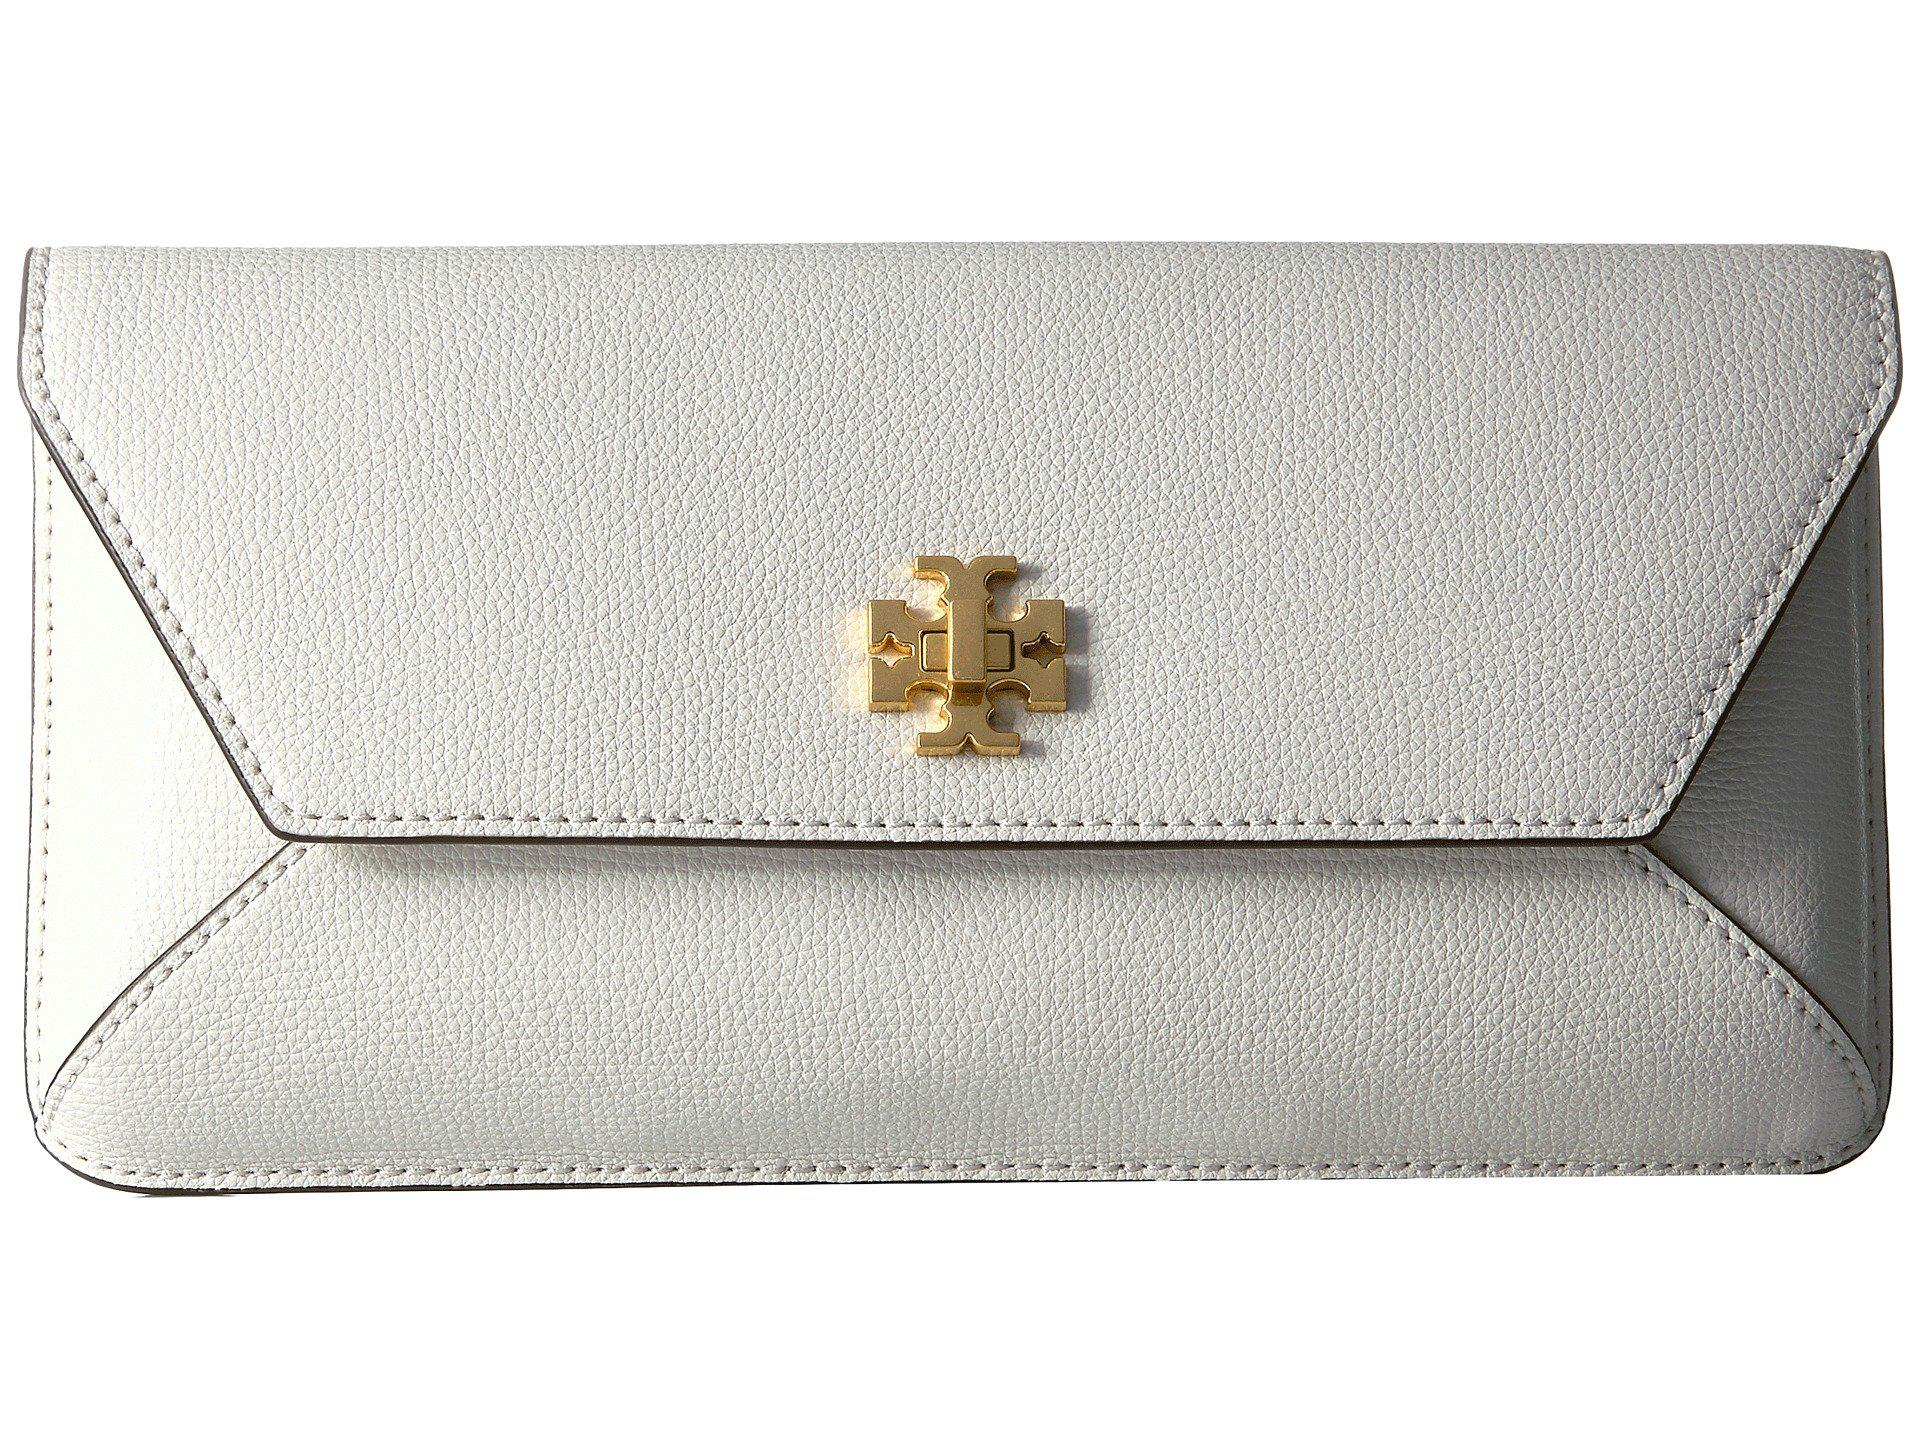 7dd5754c562 Tory Burch. Women s Kira Envelope Clutch (black) Clutch Handbags